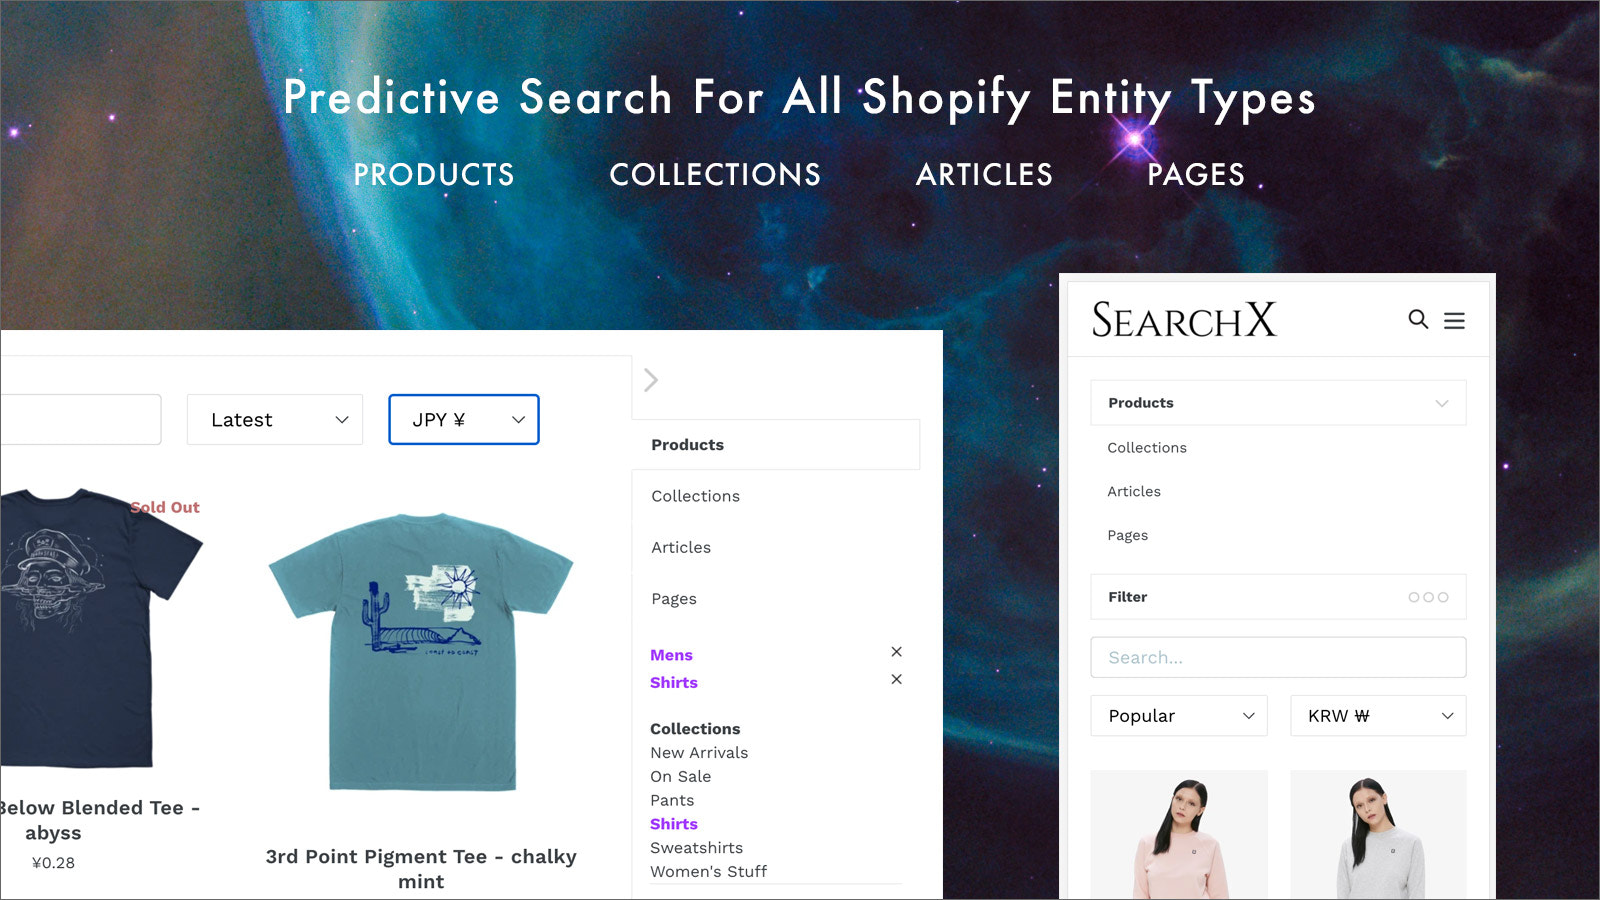 Shopify predictive search collections, articles, pages